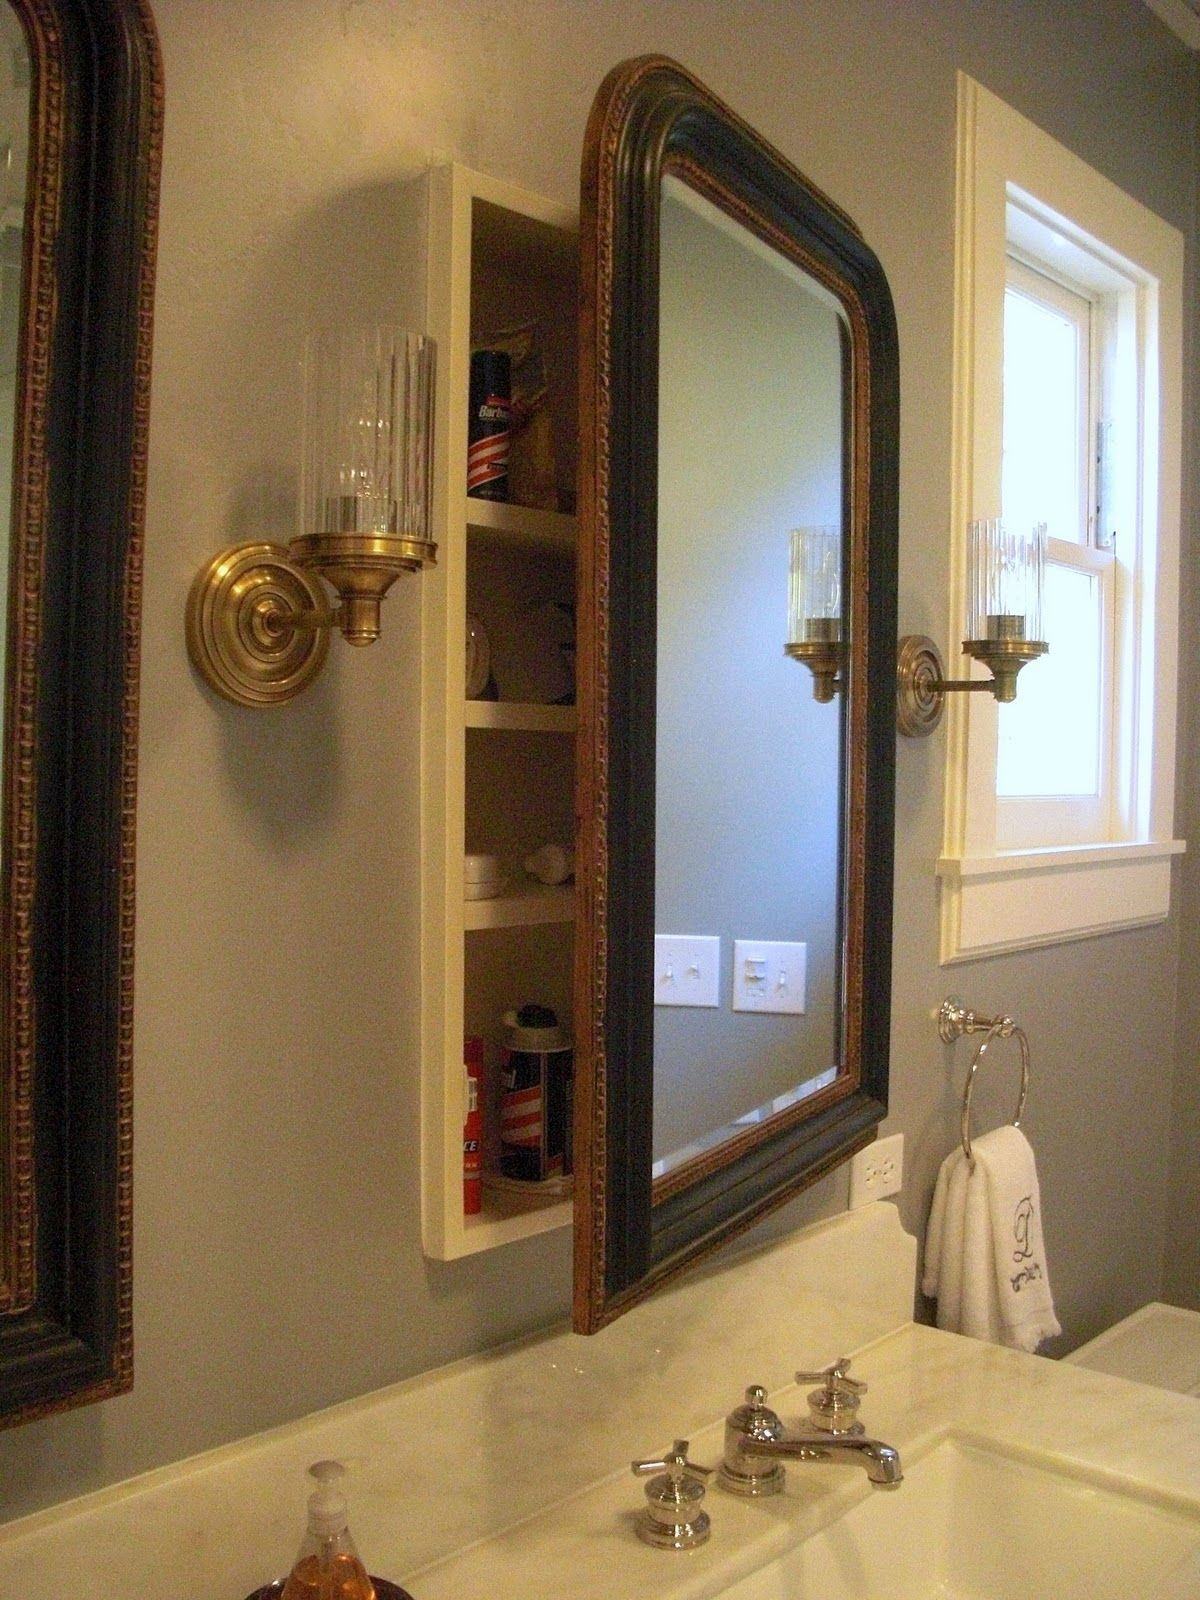 Restoration hardware mirrors over medicine cabinets - Bathroom mirrors and medicine cabinets ...